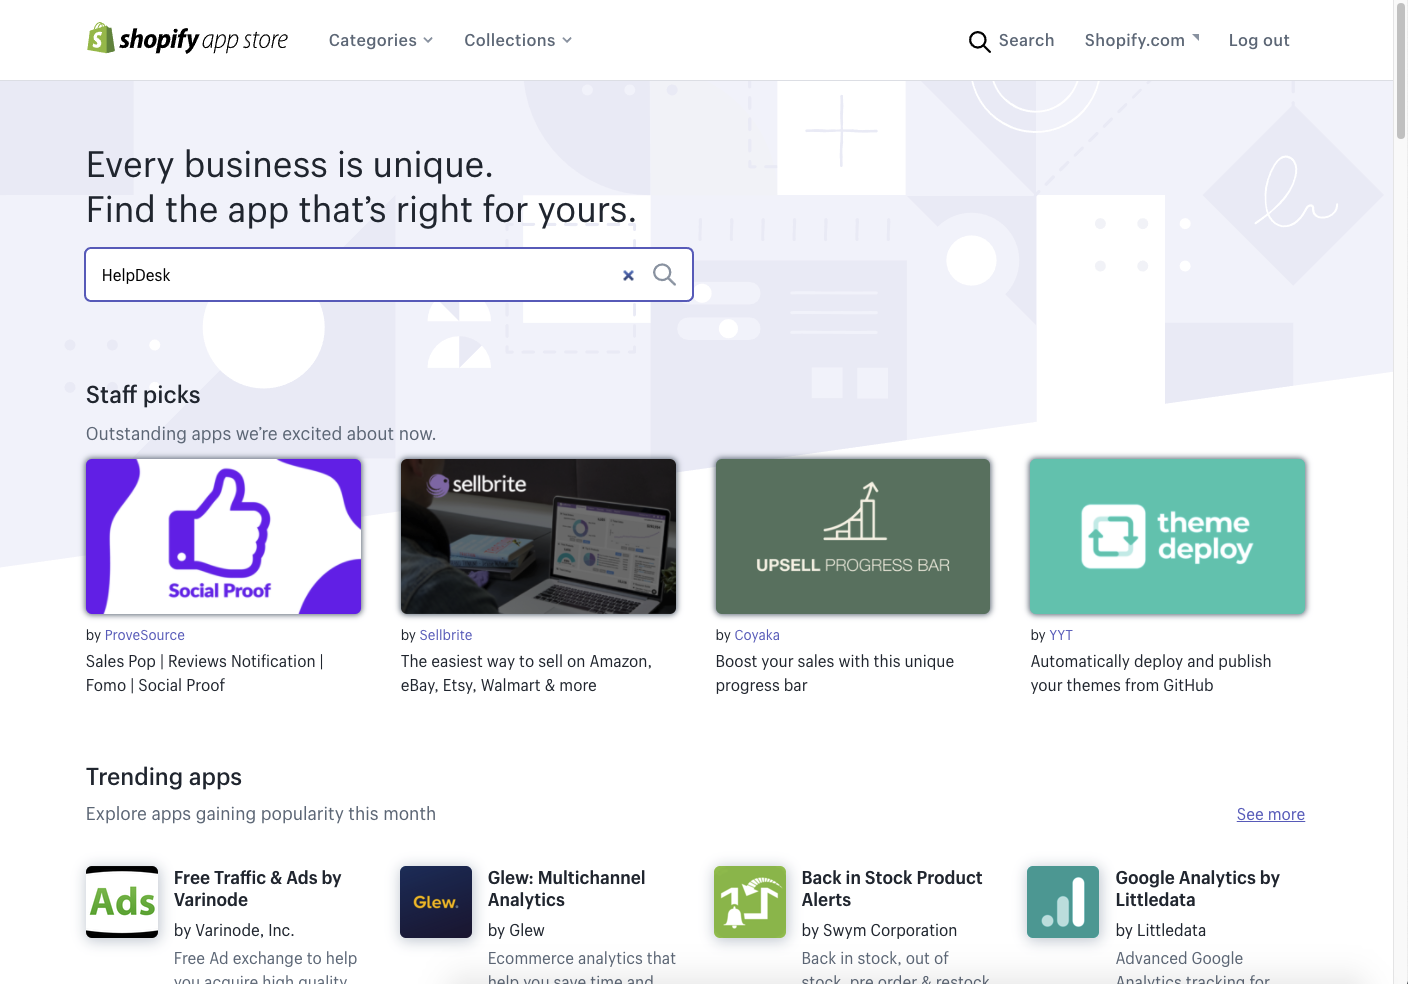 The main page of the Shopify App Store and the search bar.